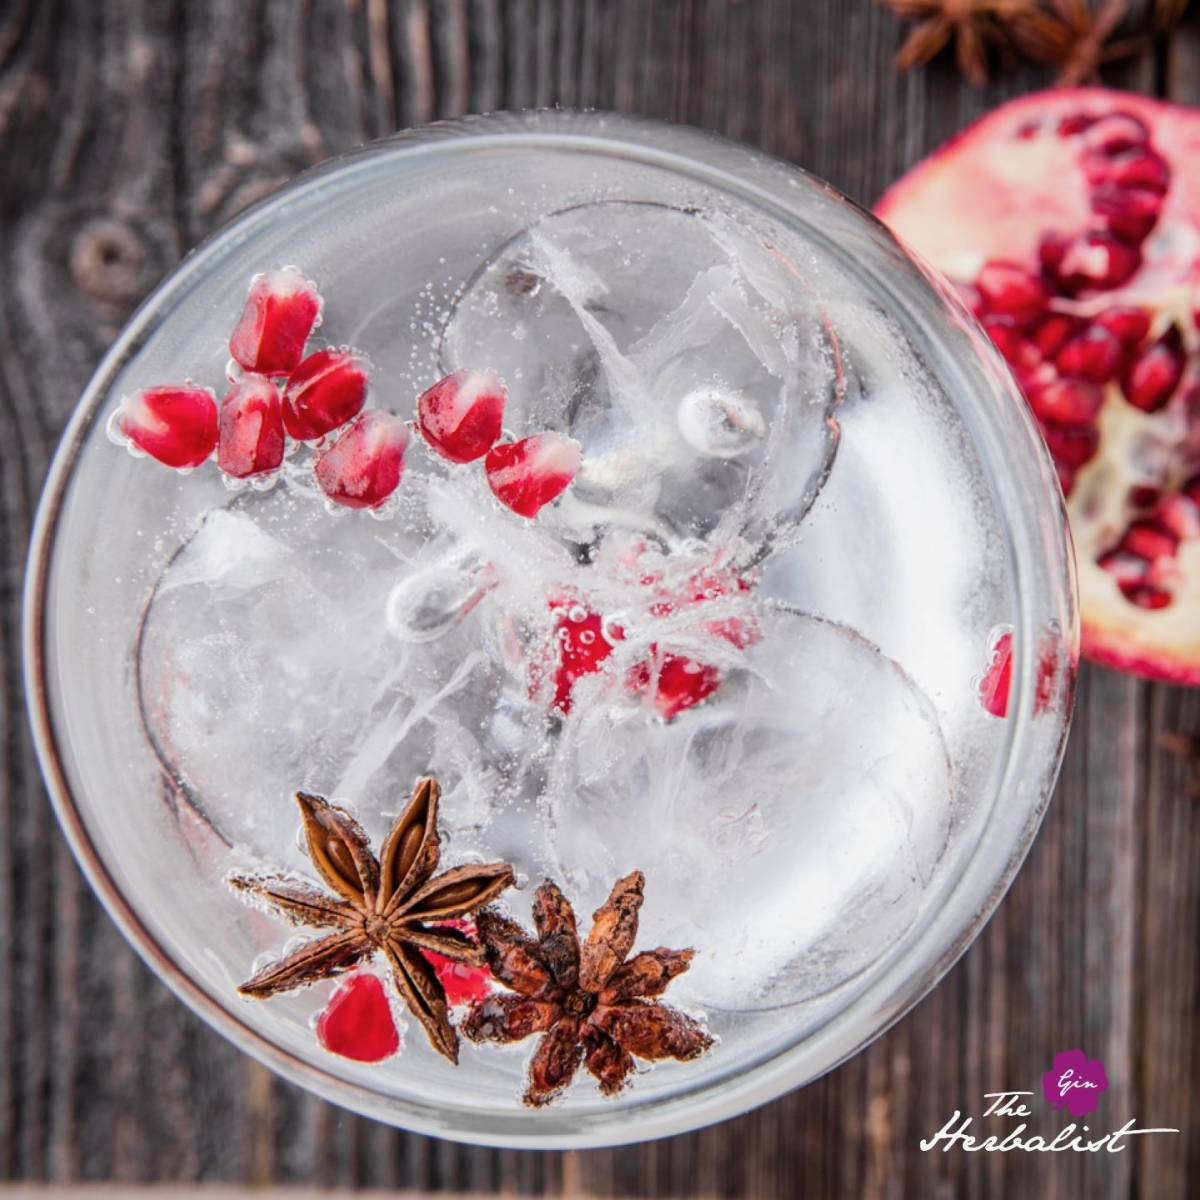 The Herbalist - Gin - Cocktails & Mobiele Bars - House of Weddings - 9